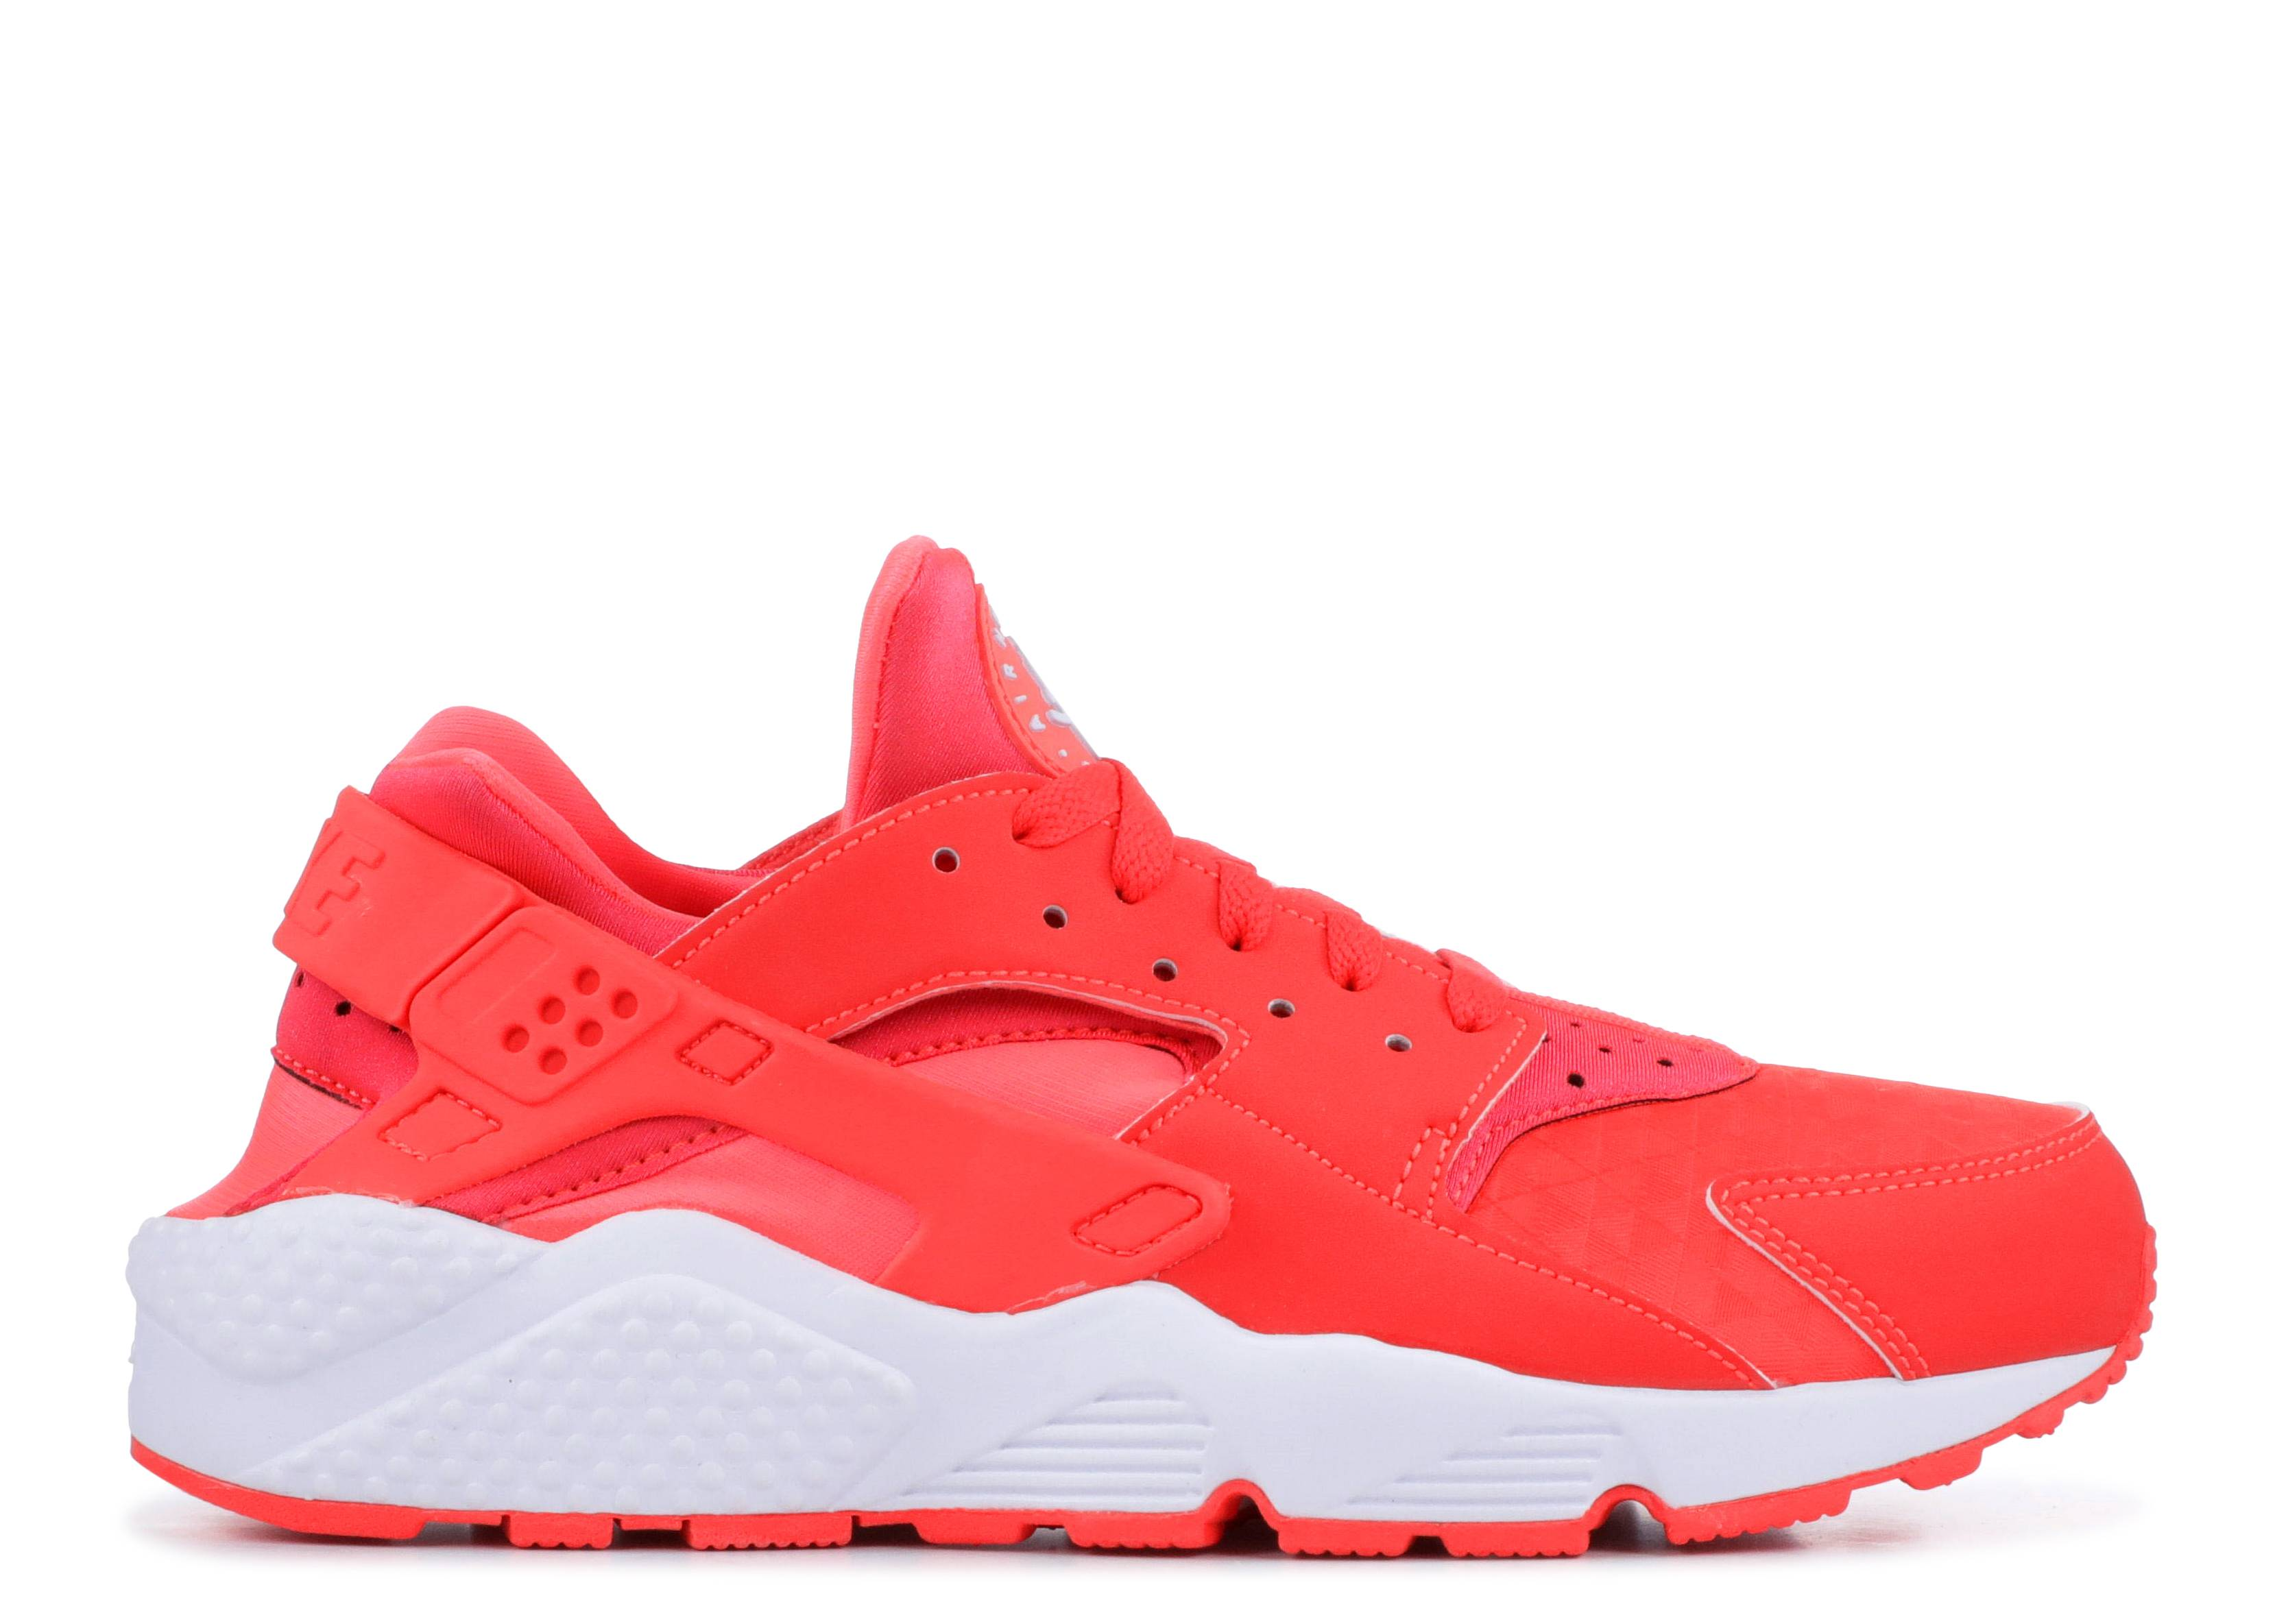 low priced b8a1d c42fa Nike Huaraches Shoes for Women & Men | Flight Club